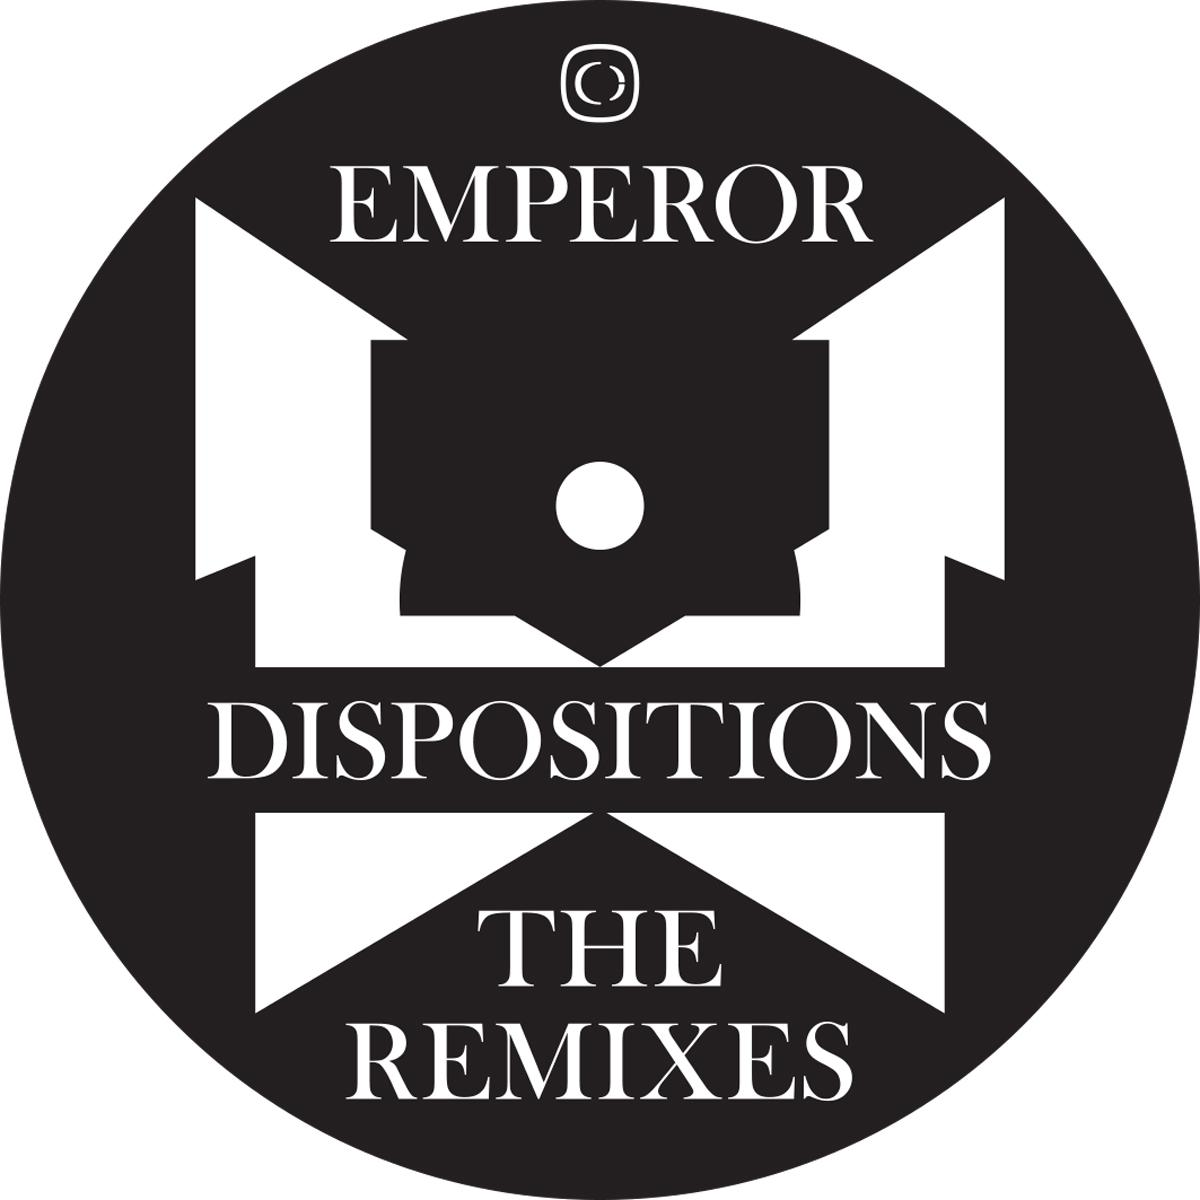 Emperor/DISPOSITIONS: THE REMIXES 12""